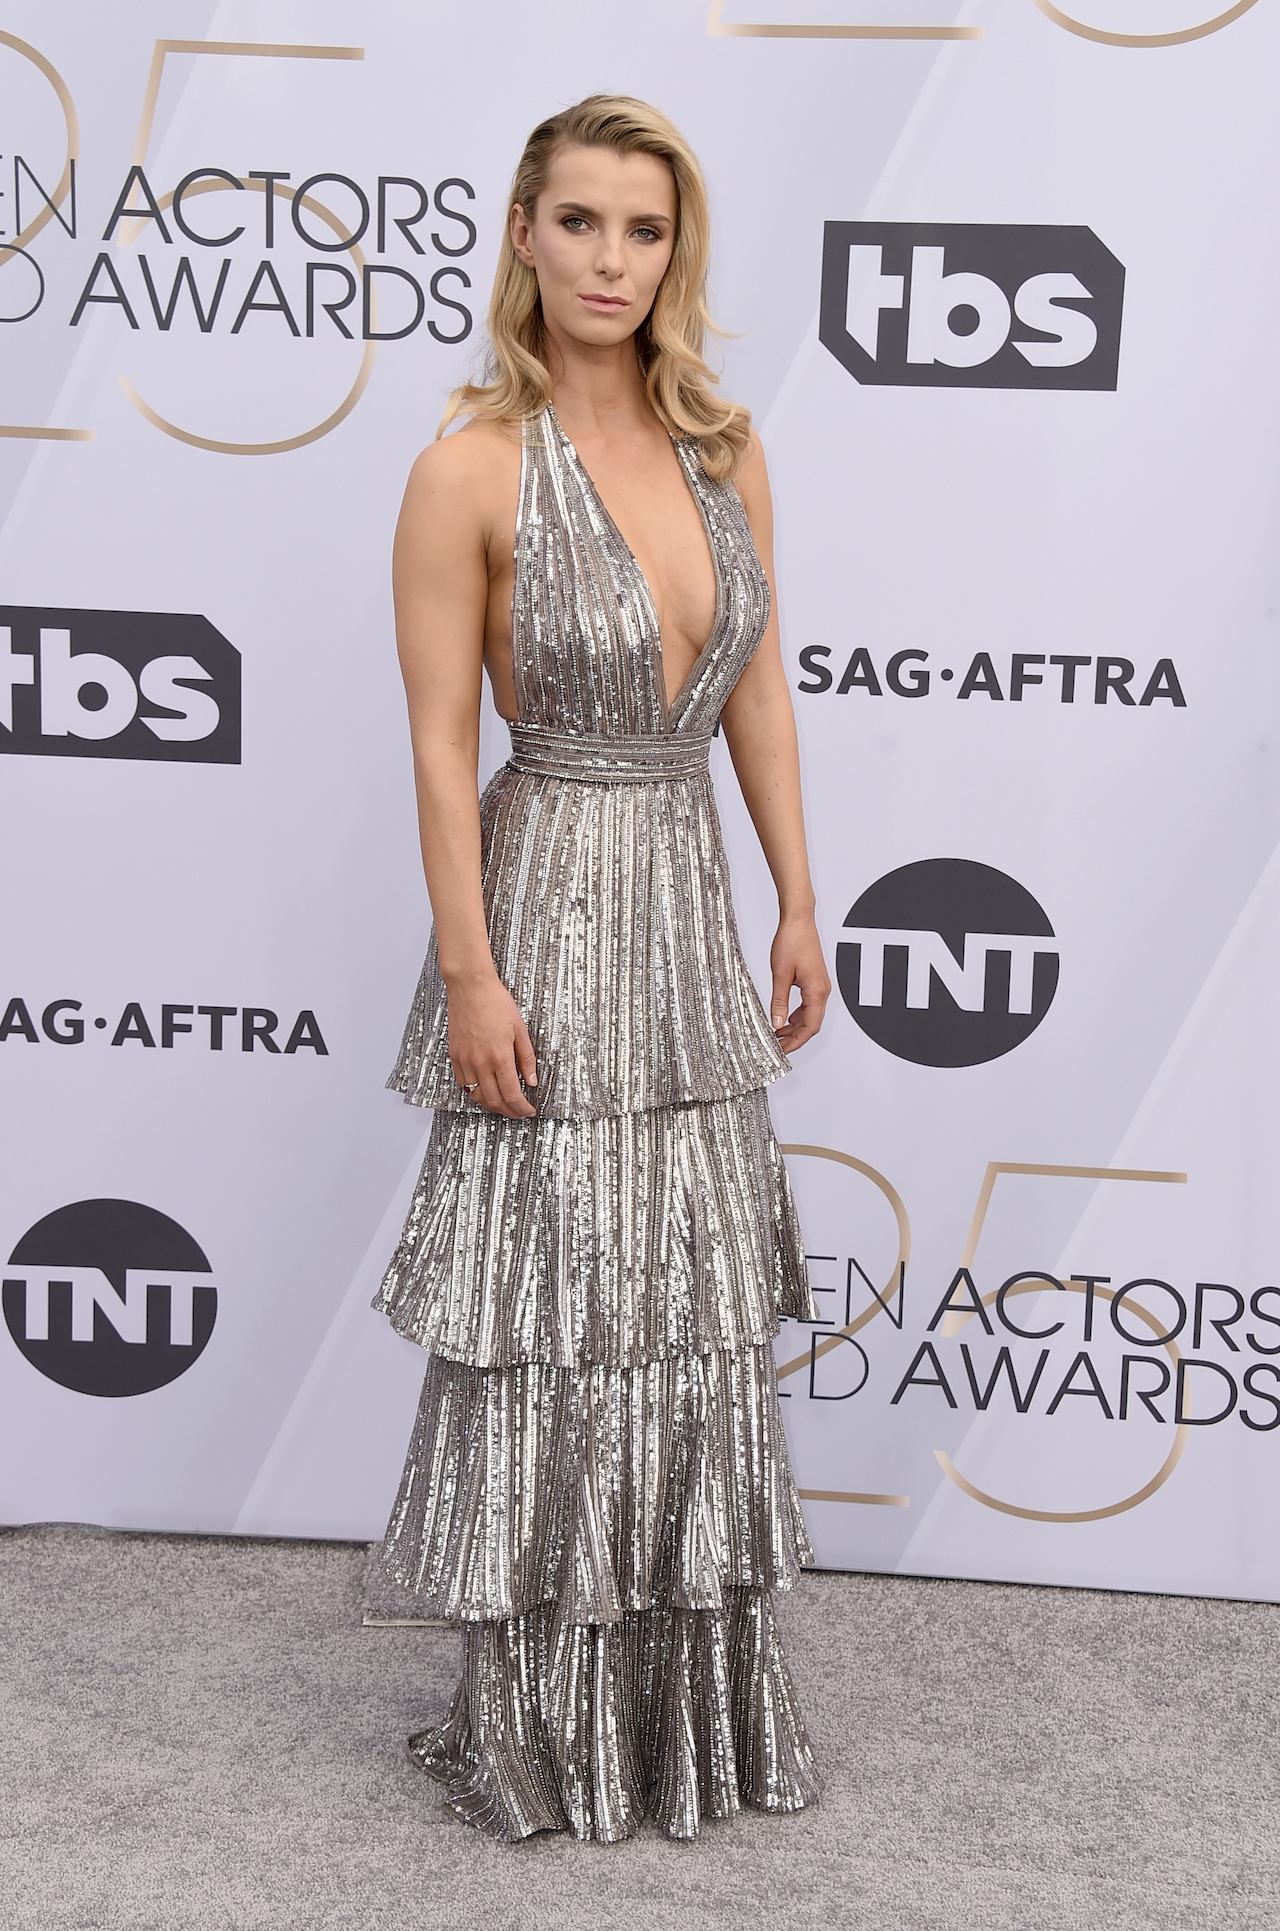 <div class='meta'><div class='origin-logo' data-origin='AP'></div><span class='caption-text' data-credit='Jordan Strauss/Invision/AP'>Betty Gilpin arrives at the 25th annual Screen Actors Guild Awards at the Shrine Auditorium & Expo Hall on Sunday, Jan. 27, 2019, in Los Angeles.</span></div>